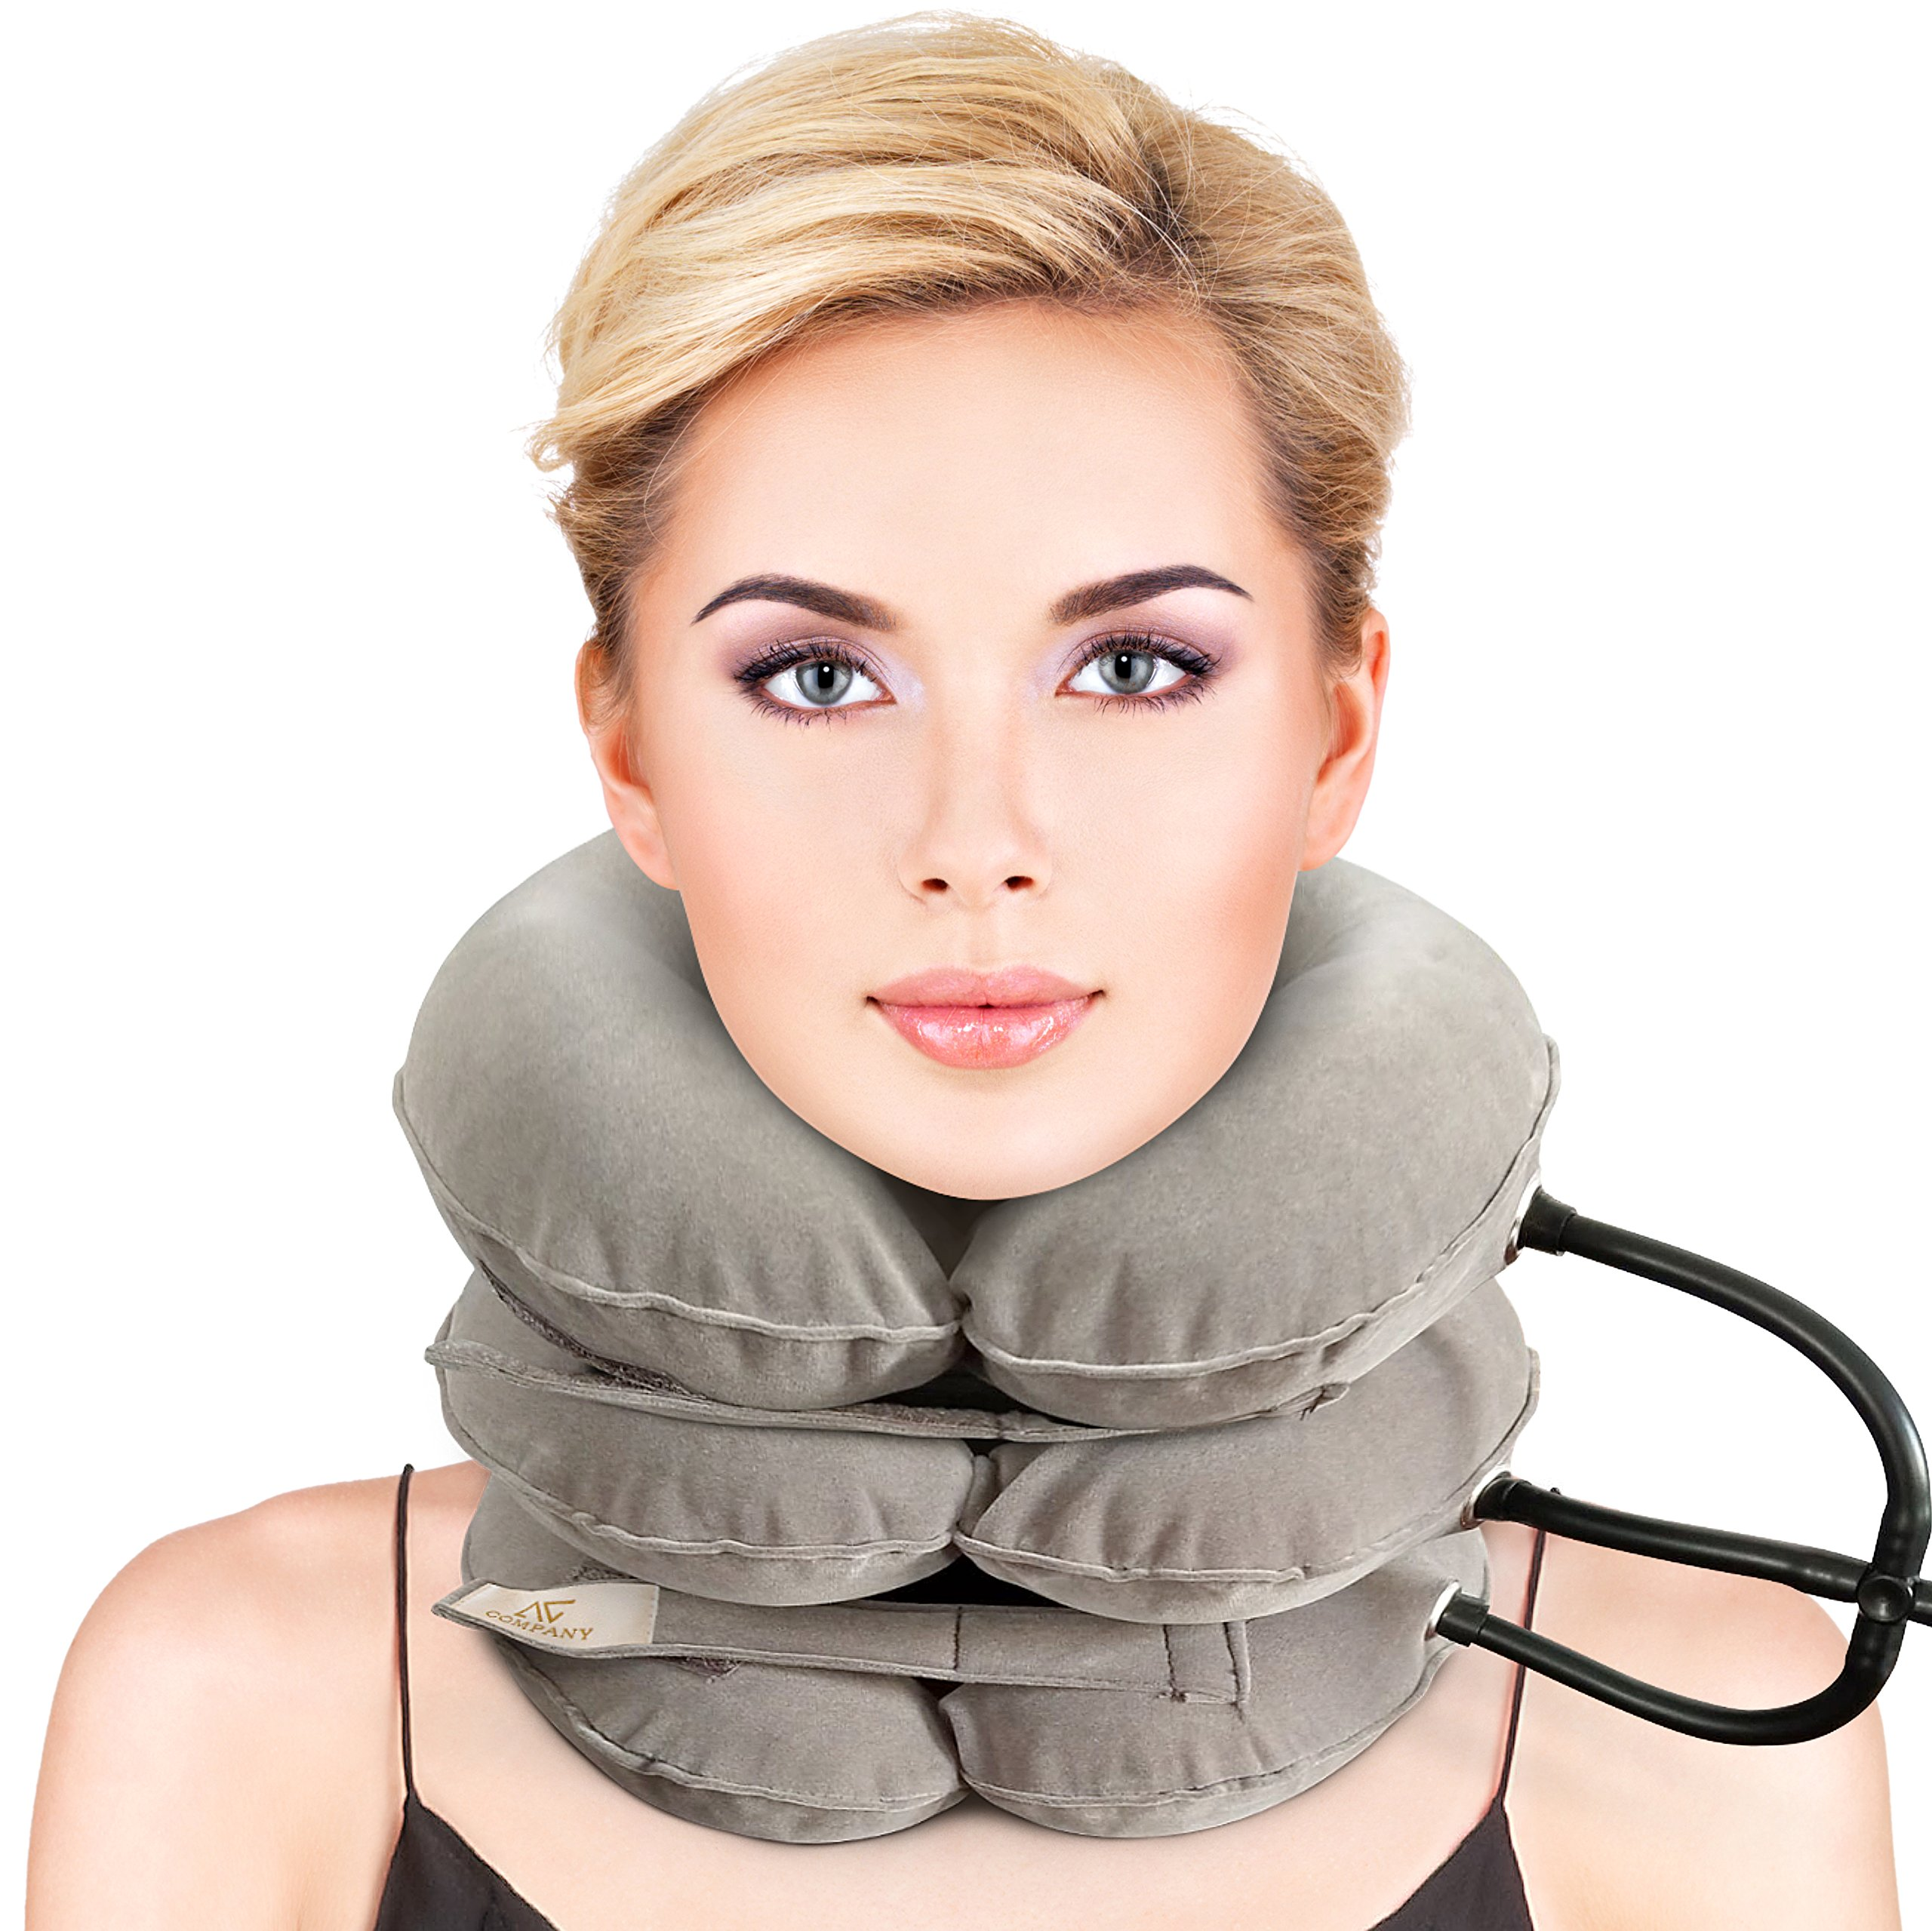 Cervical Neck Traction Device FDA Registered Inflatable, Home, Instant Pain Relief -for Chronic Neck and Shoulder Relieving Remedy(Grey)